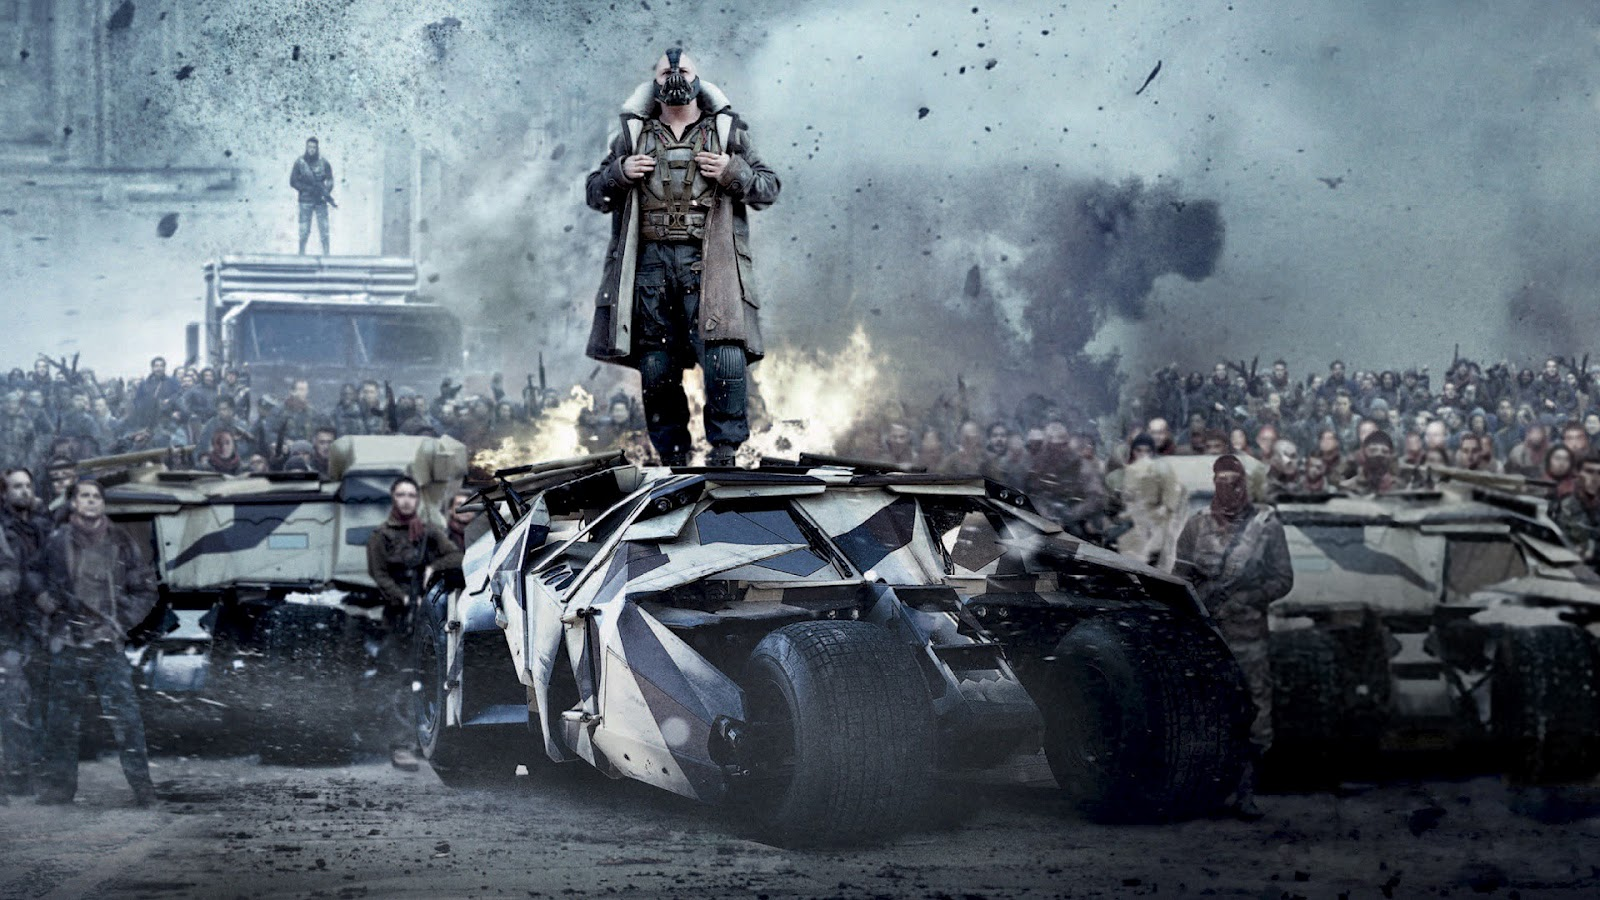 Bane Dark Knight Rises Hd Wallpapers Hd Wallpapers